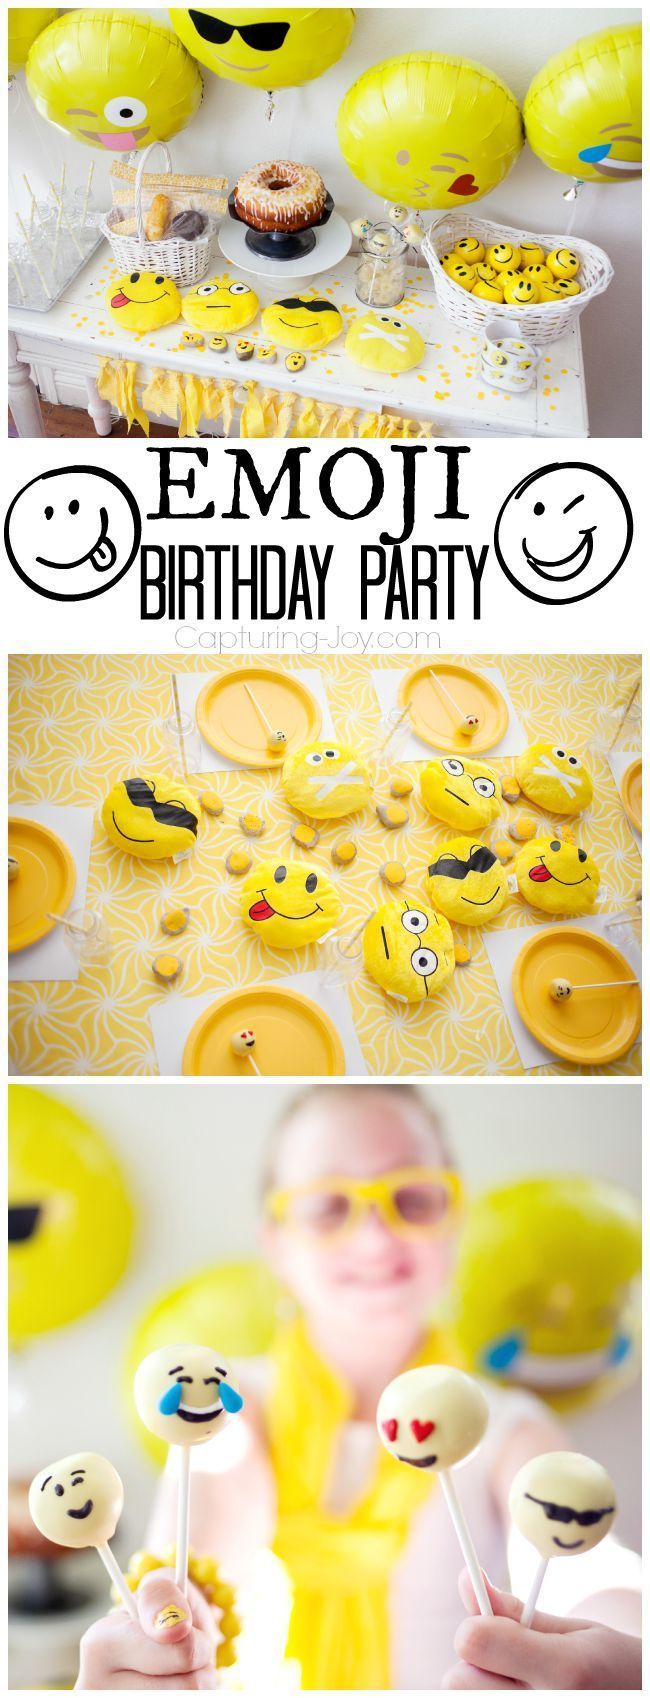 Emoji Birthday Party With Happy Face Emoticons Perfect Idea For Your Teen